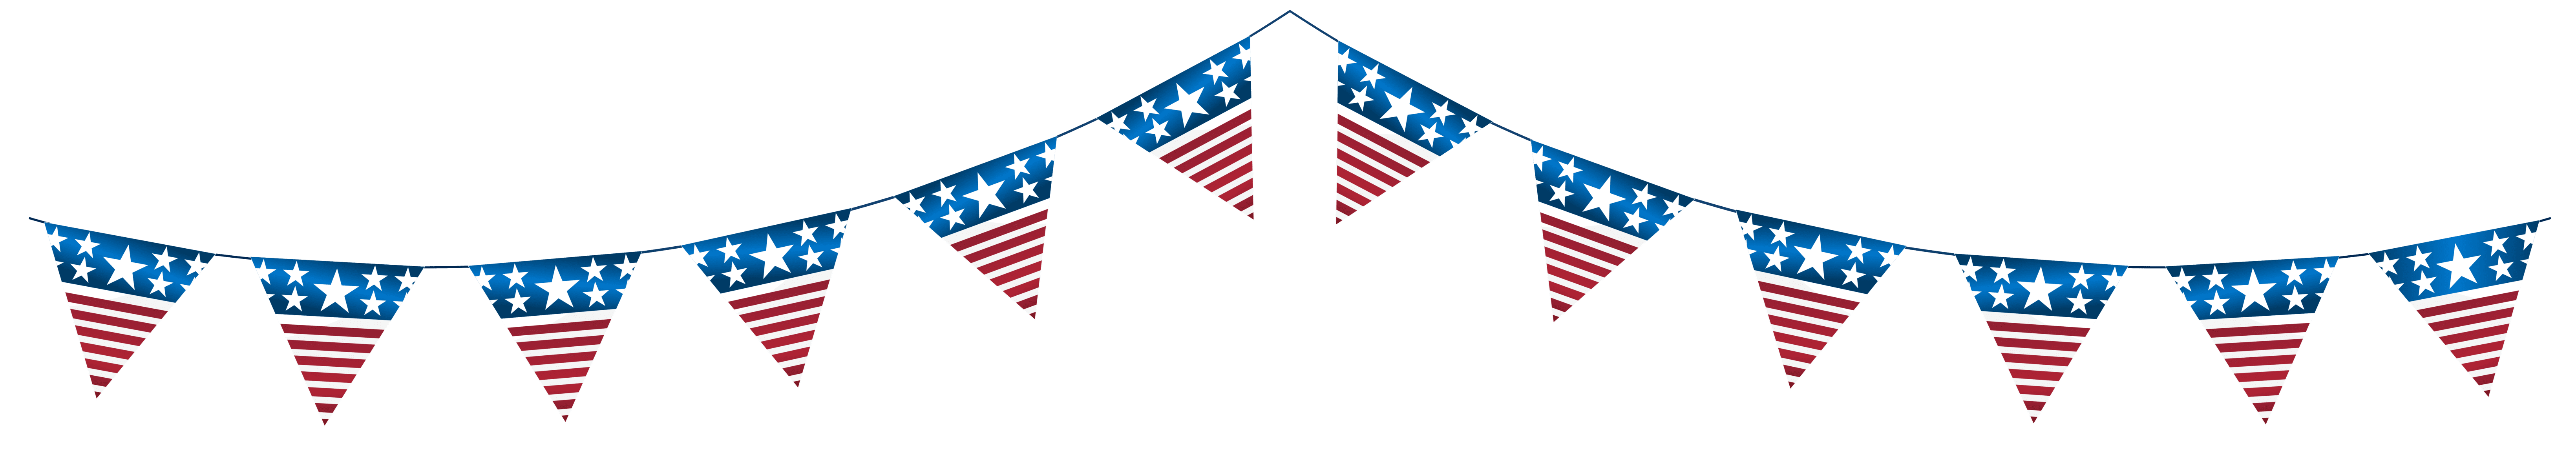 library Usa transparent clipart. Streamer png clip art